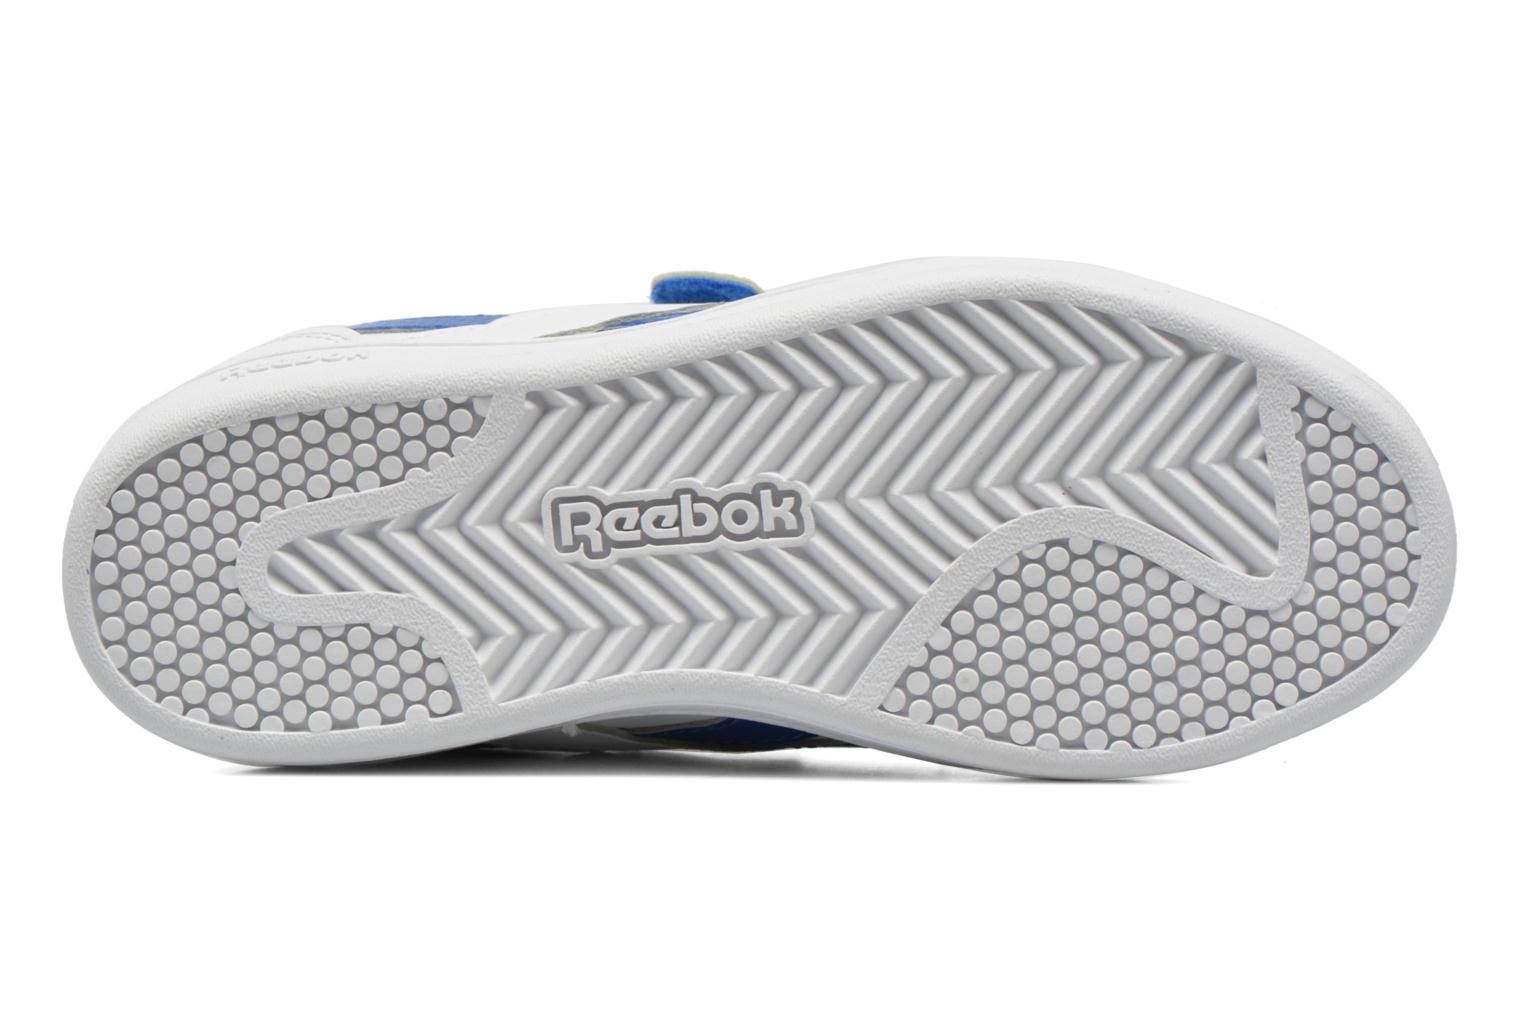 Reebok Royal Prime Alt White/Awesome Blue/Primal Red